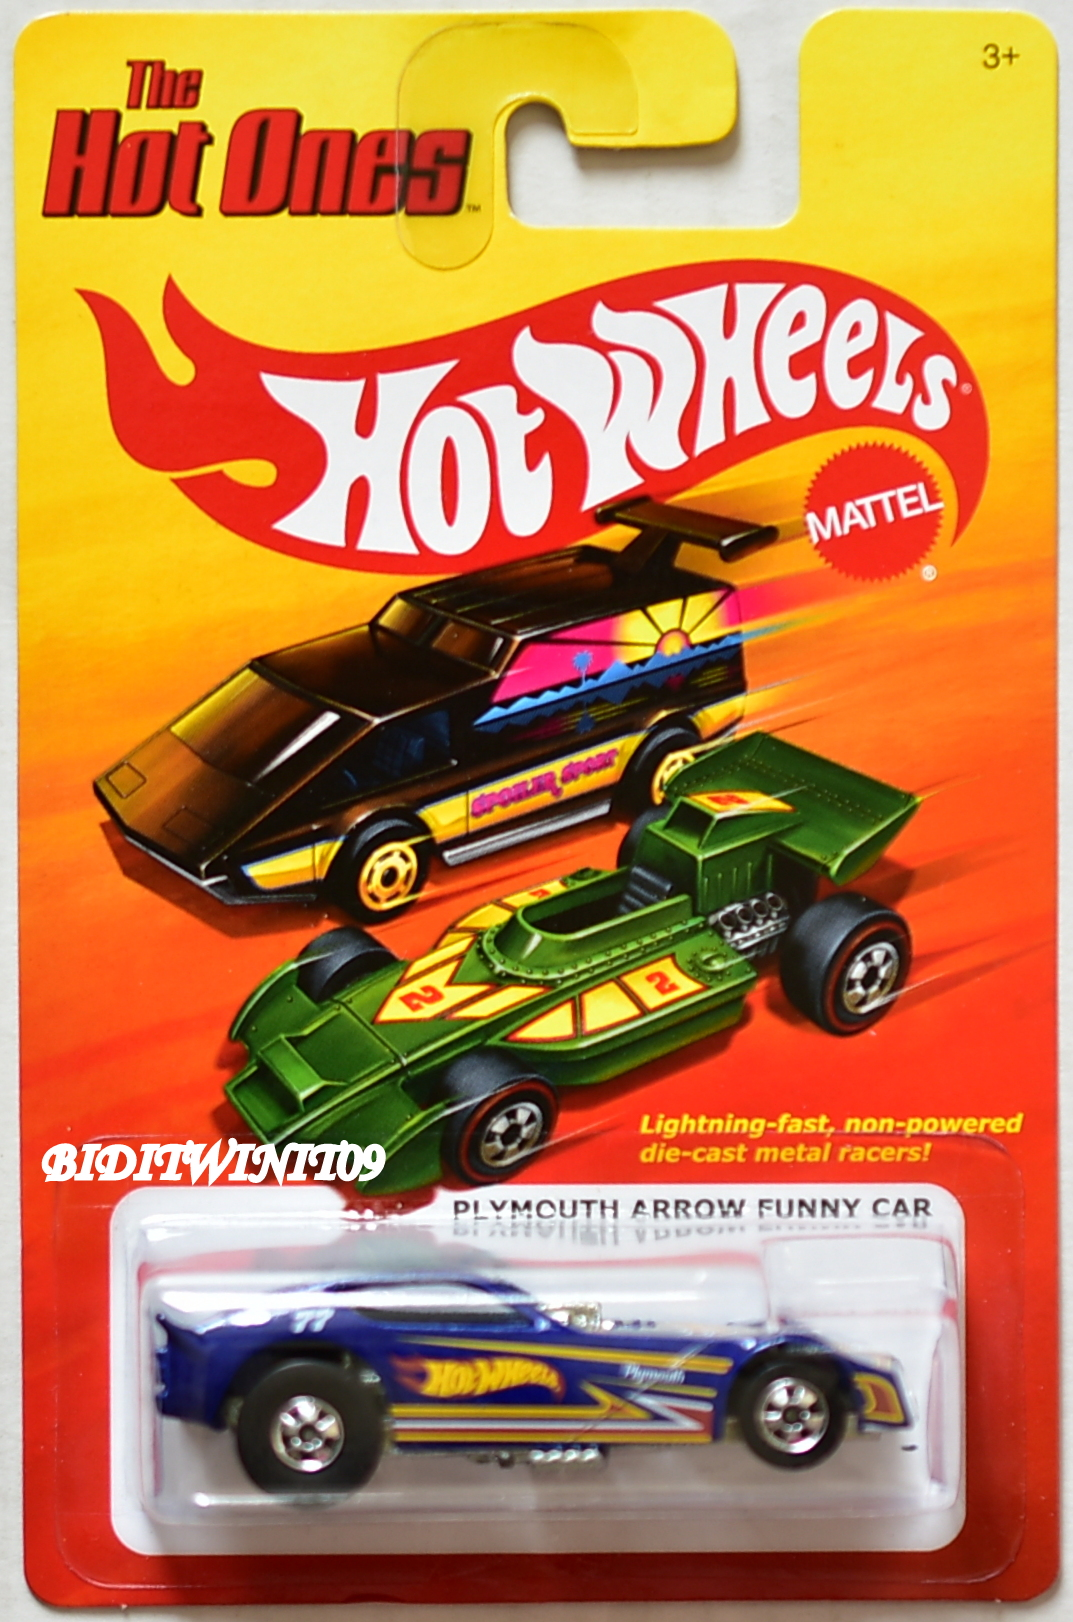 HOT WHEELS THE HOT ONES PLYMOUTH ARROW FUNNY CAR BLUE E+